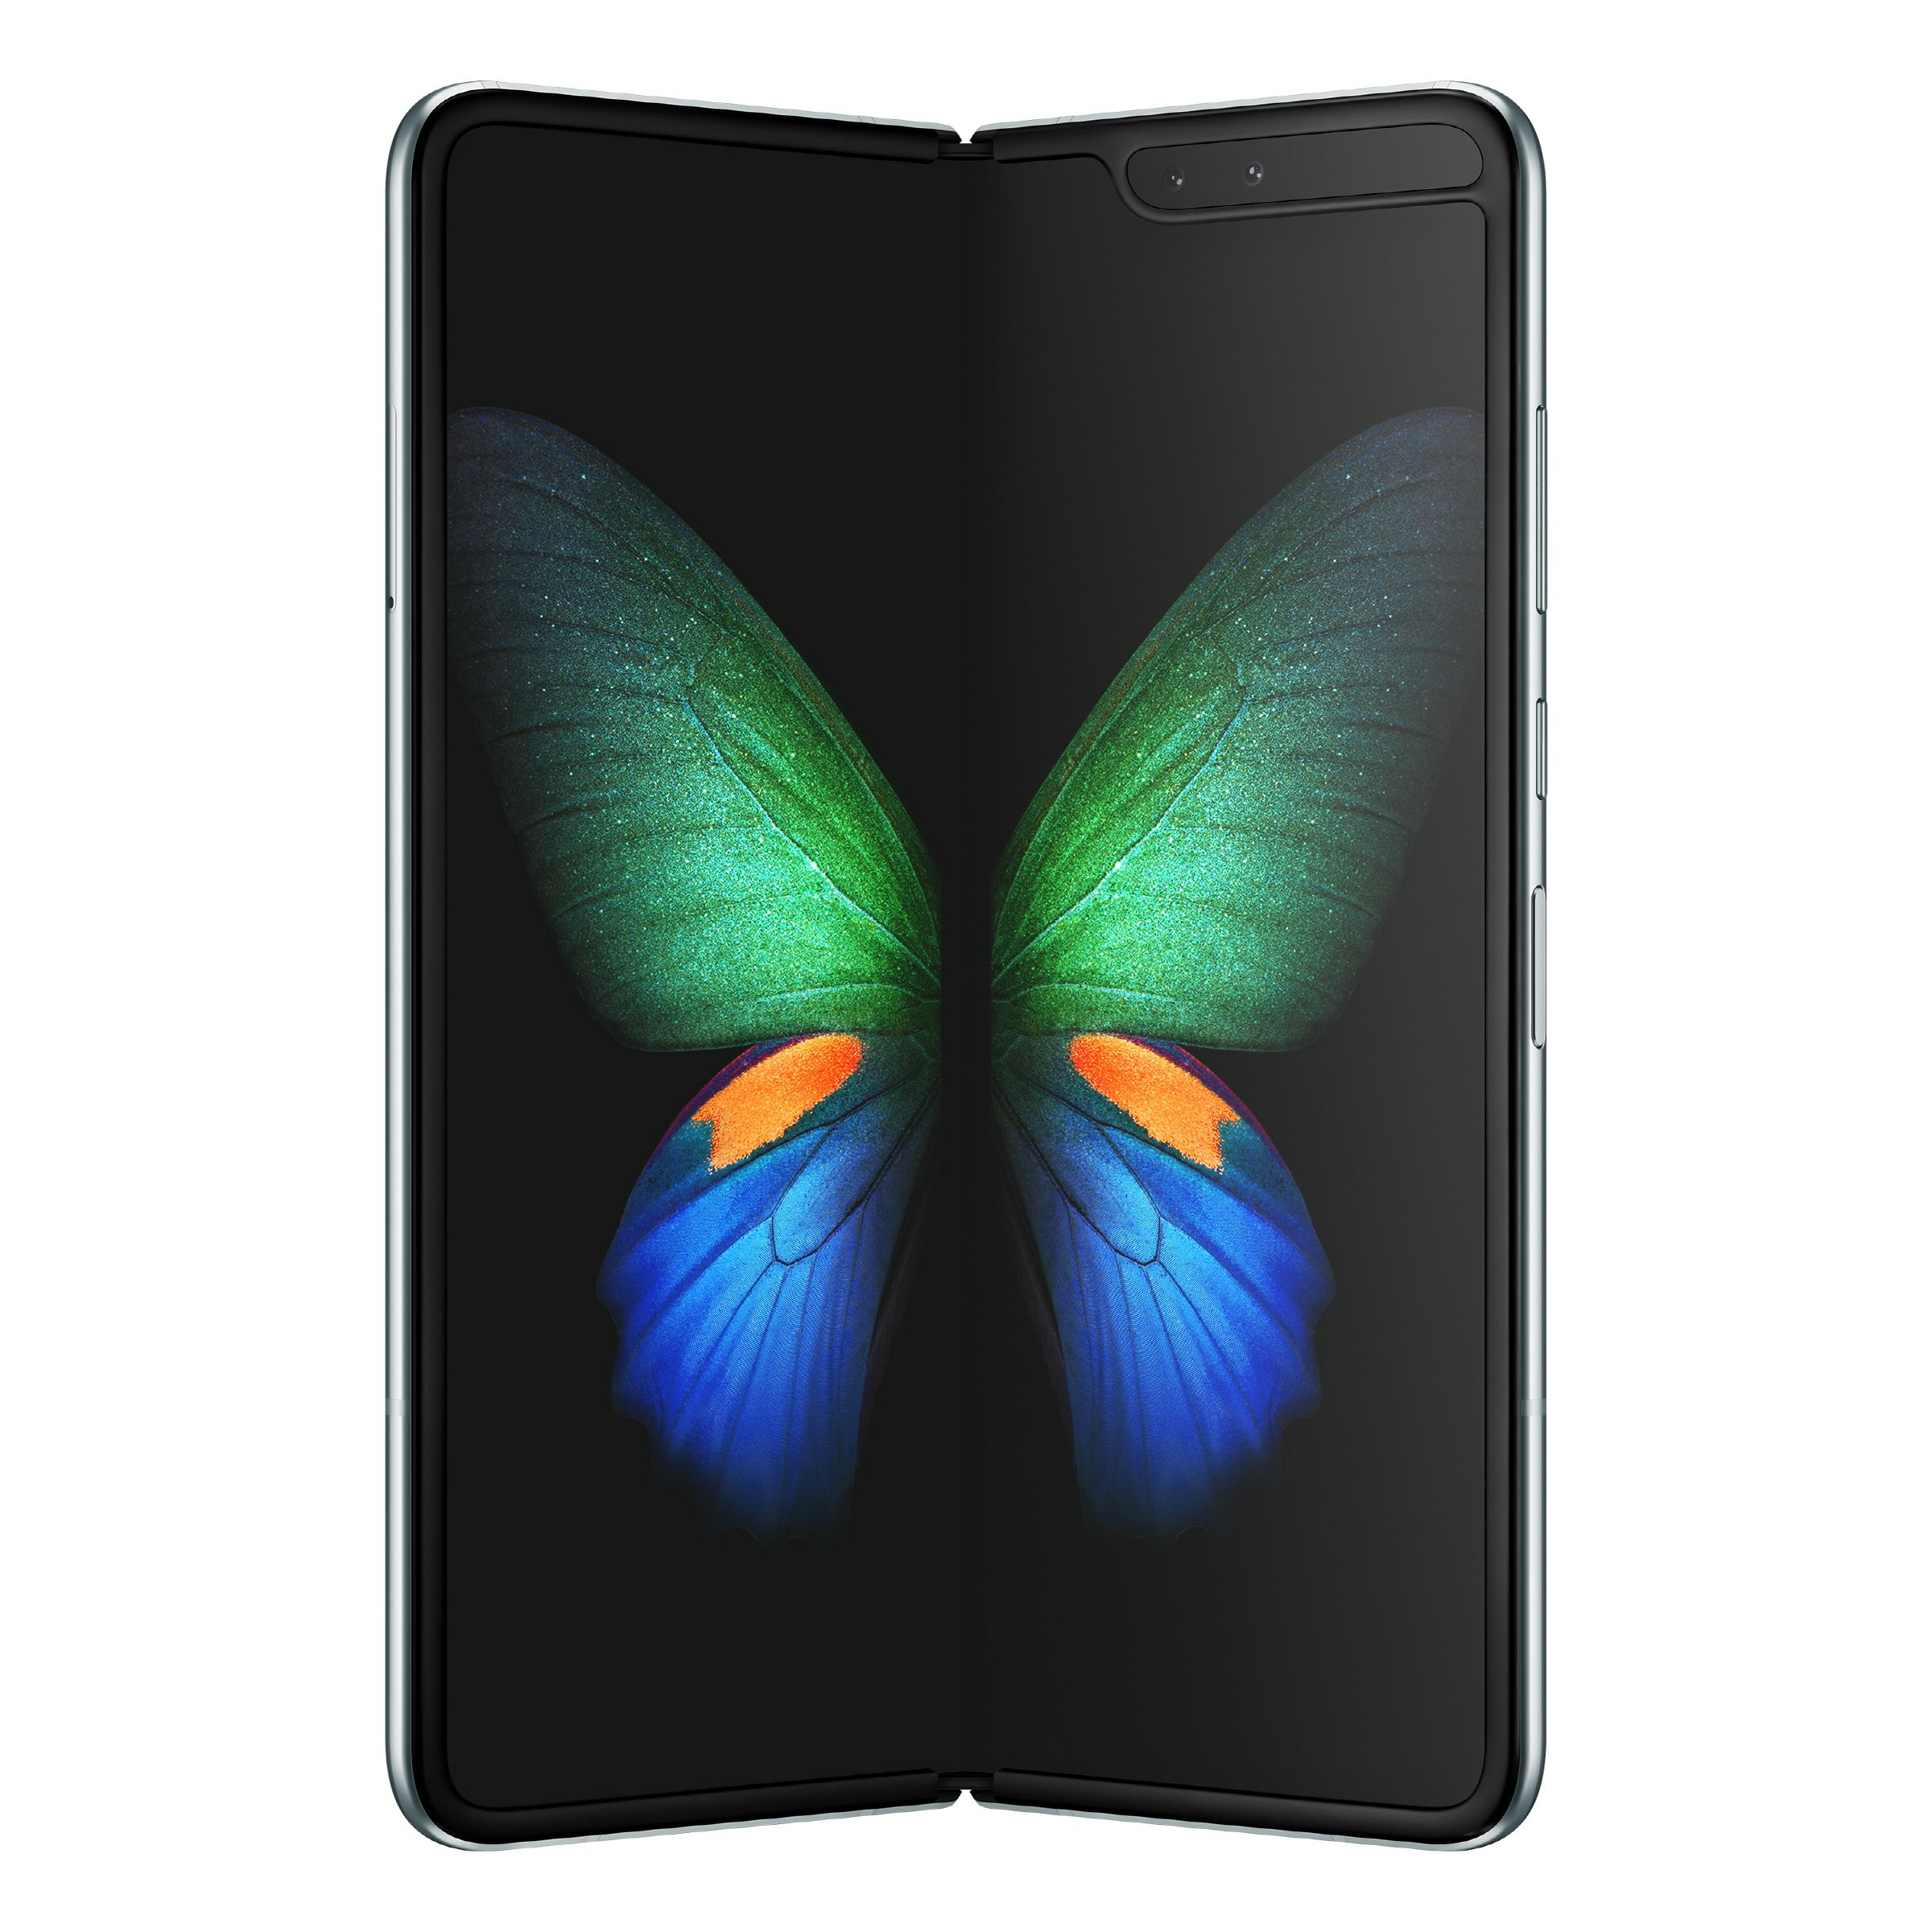 Samsung's Galaxy Fold will be available on EE, and here's how to pre-order it